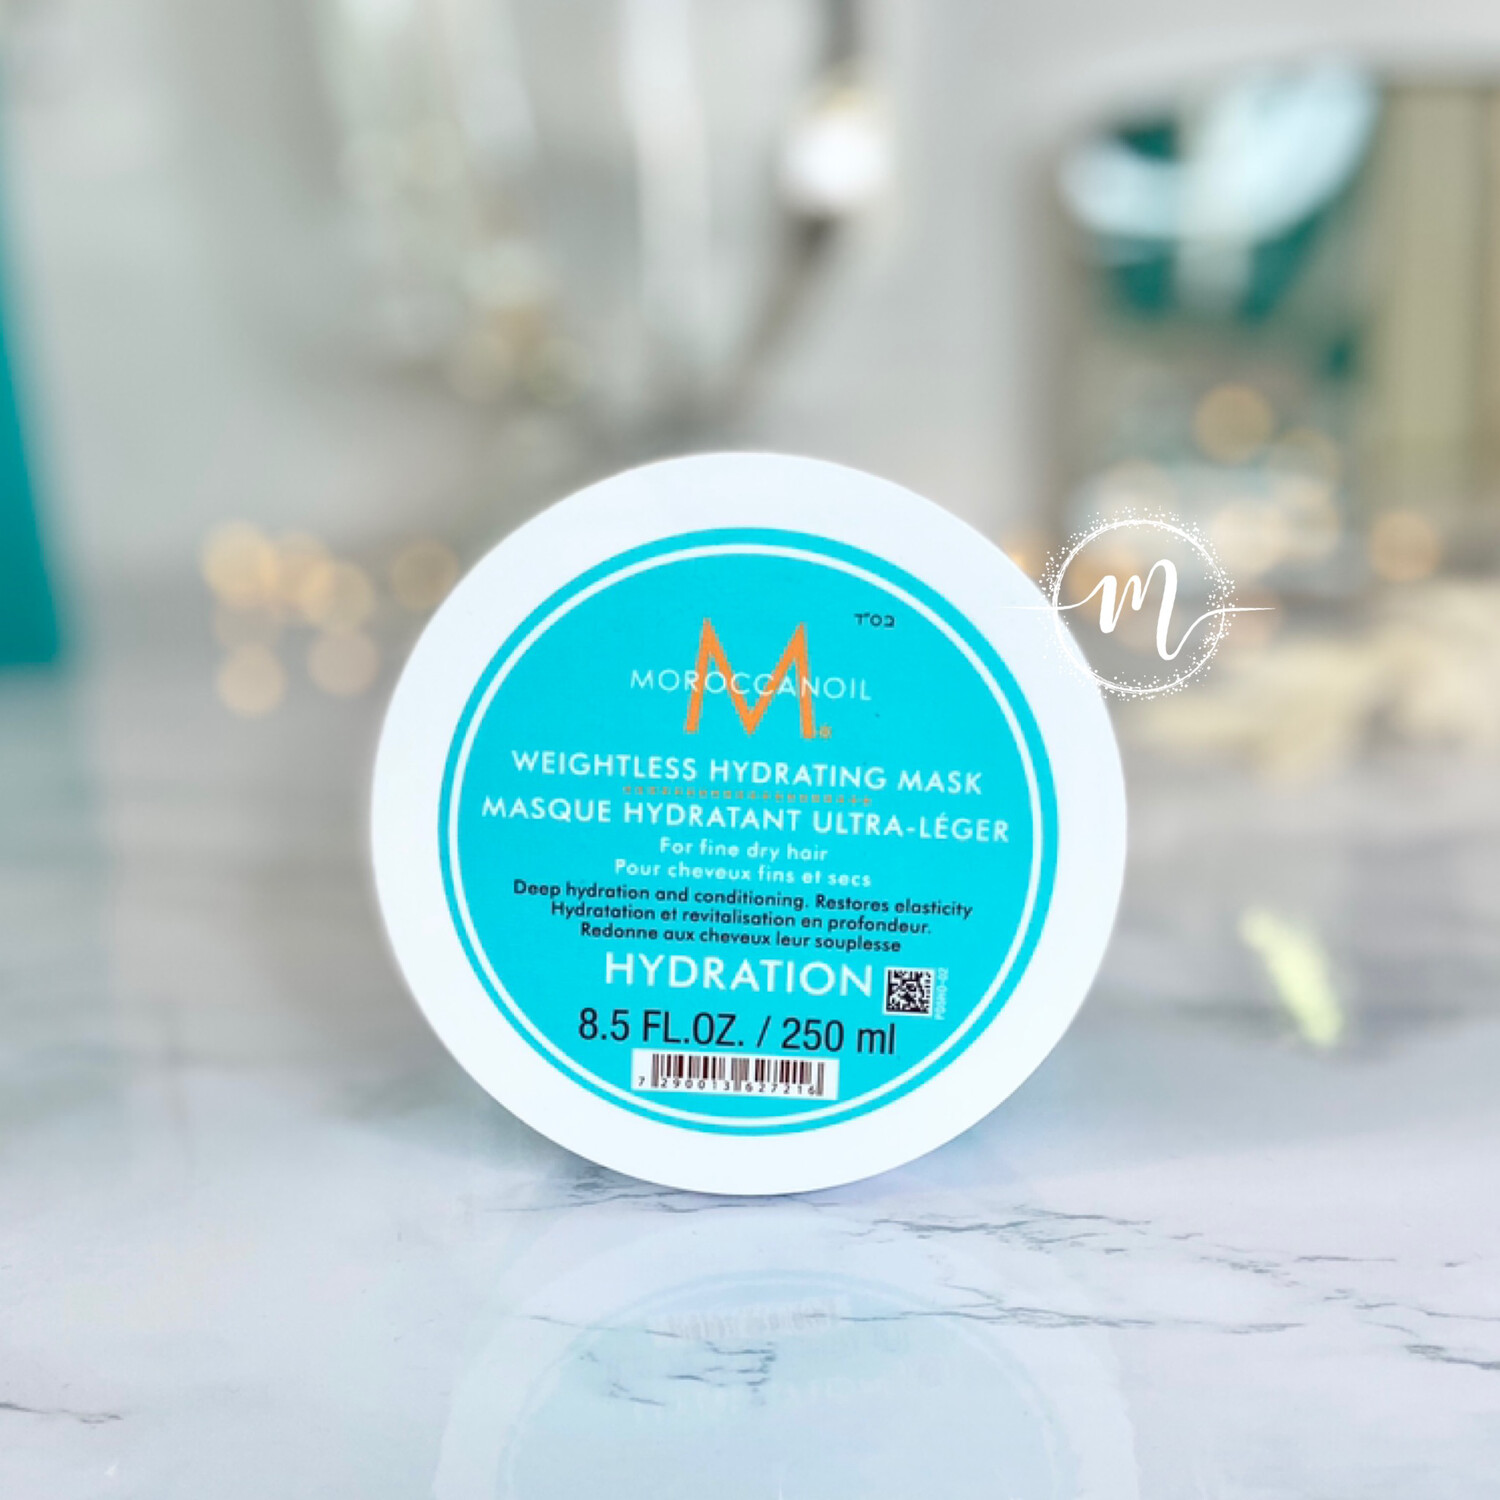 Masque Hydratant Ultra-Léger 250ml Moroccanoil